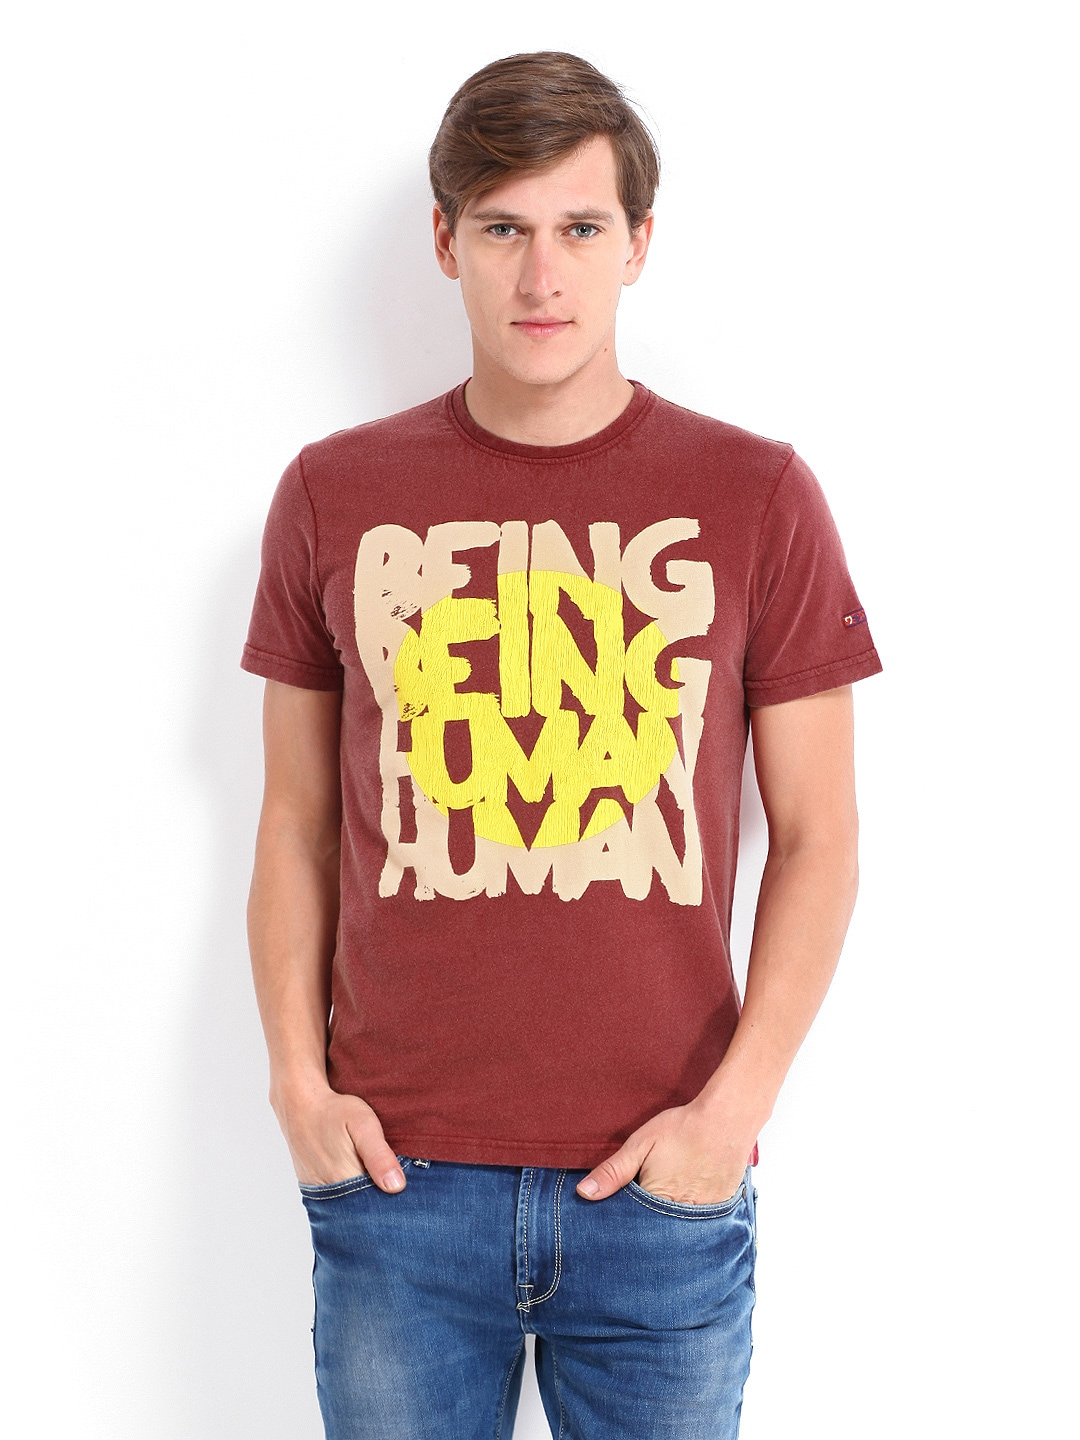 Buy being human clothing men maroon printed t shirt 289 for Buy being human t shirts online